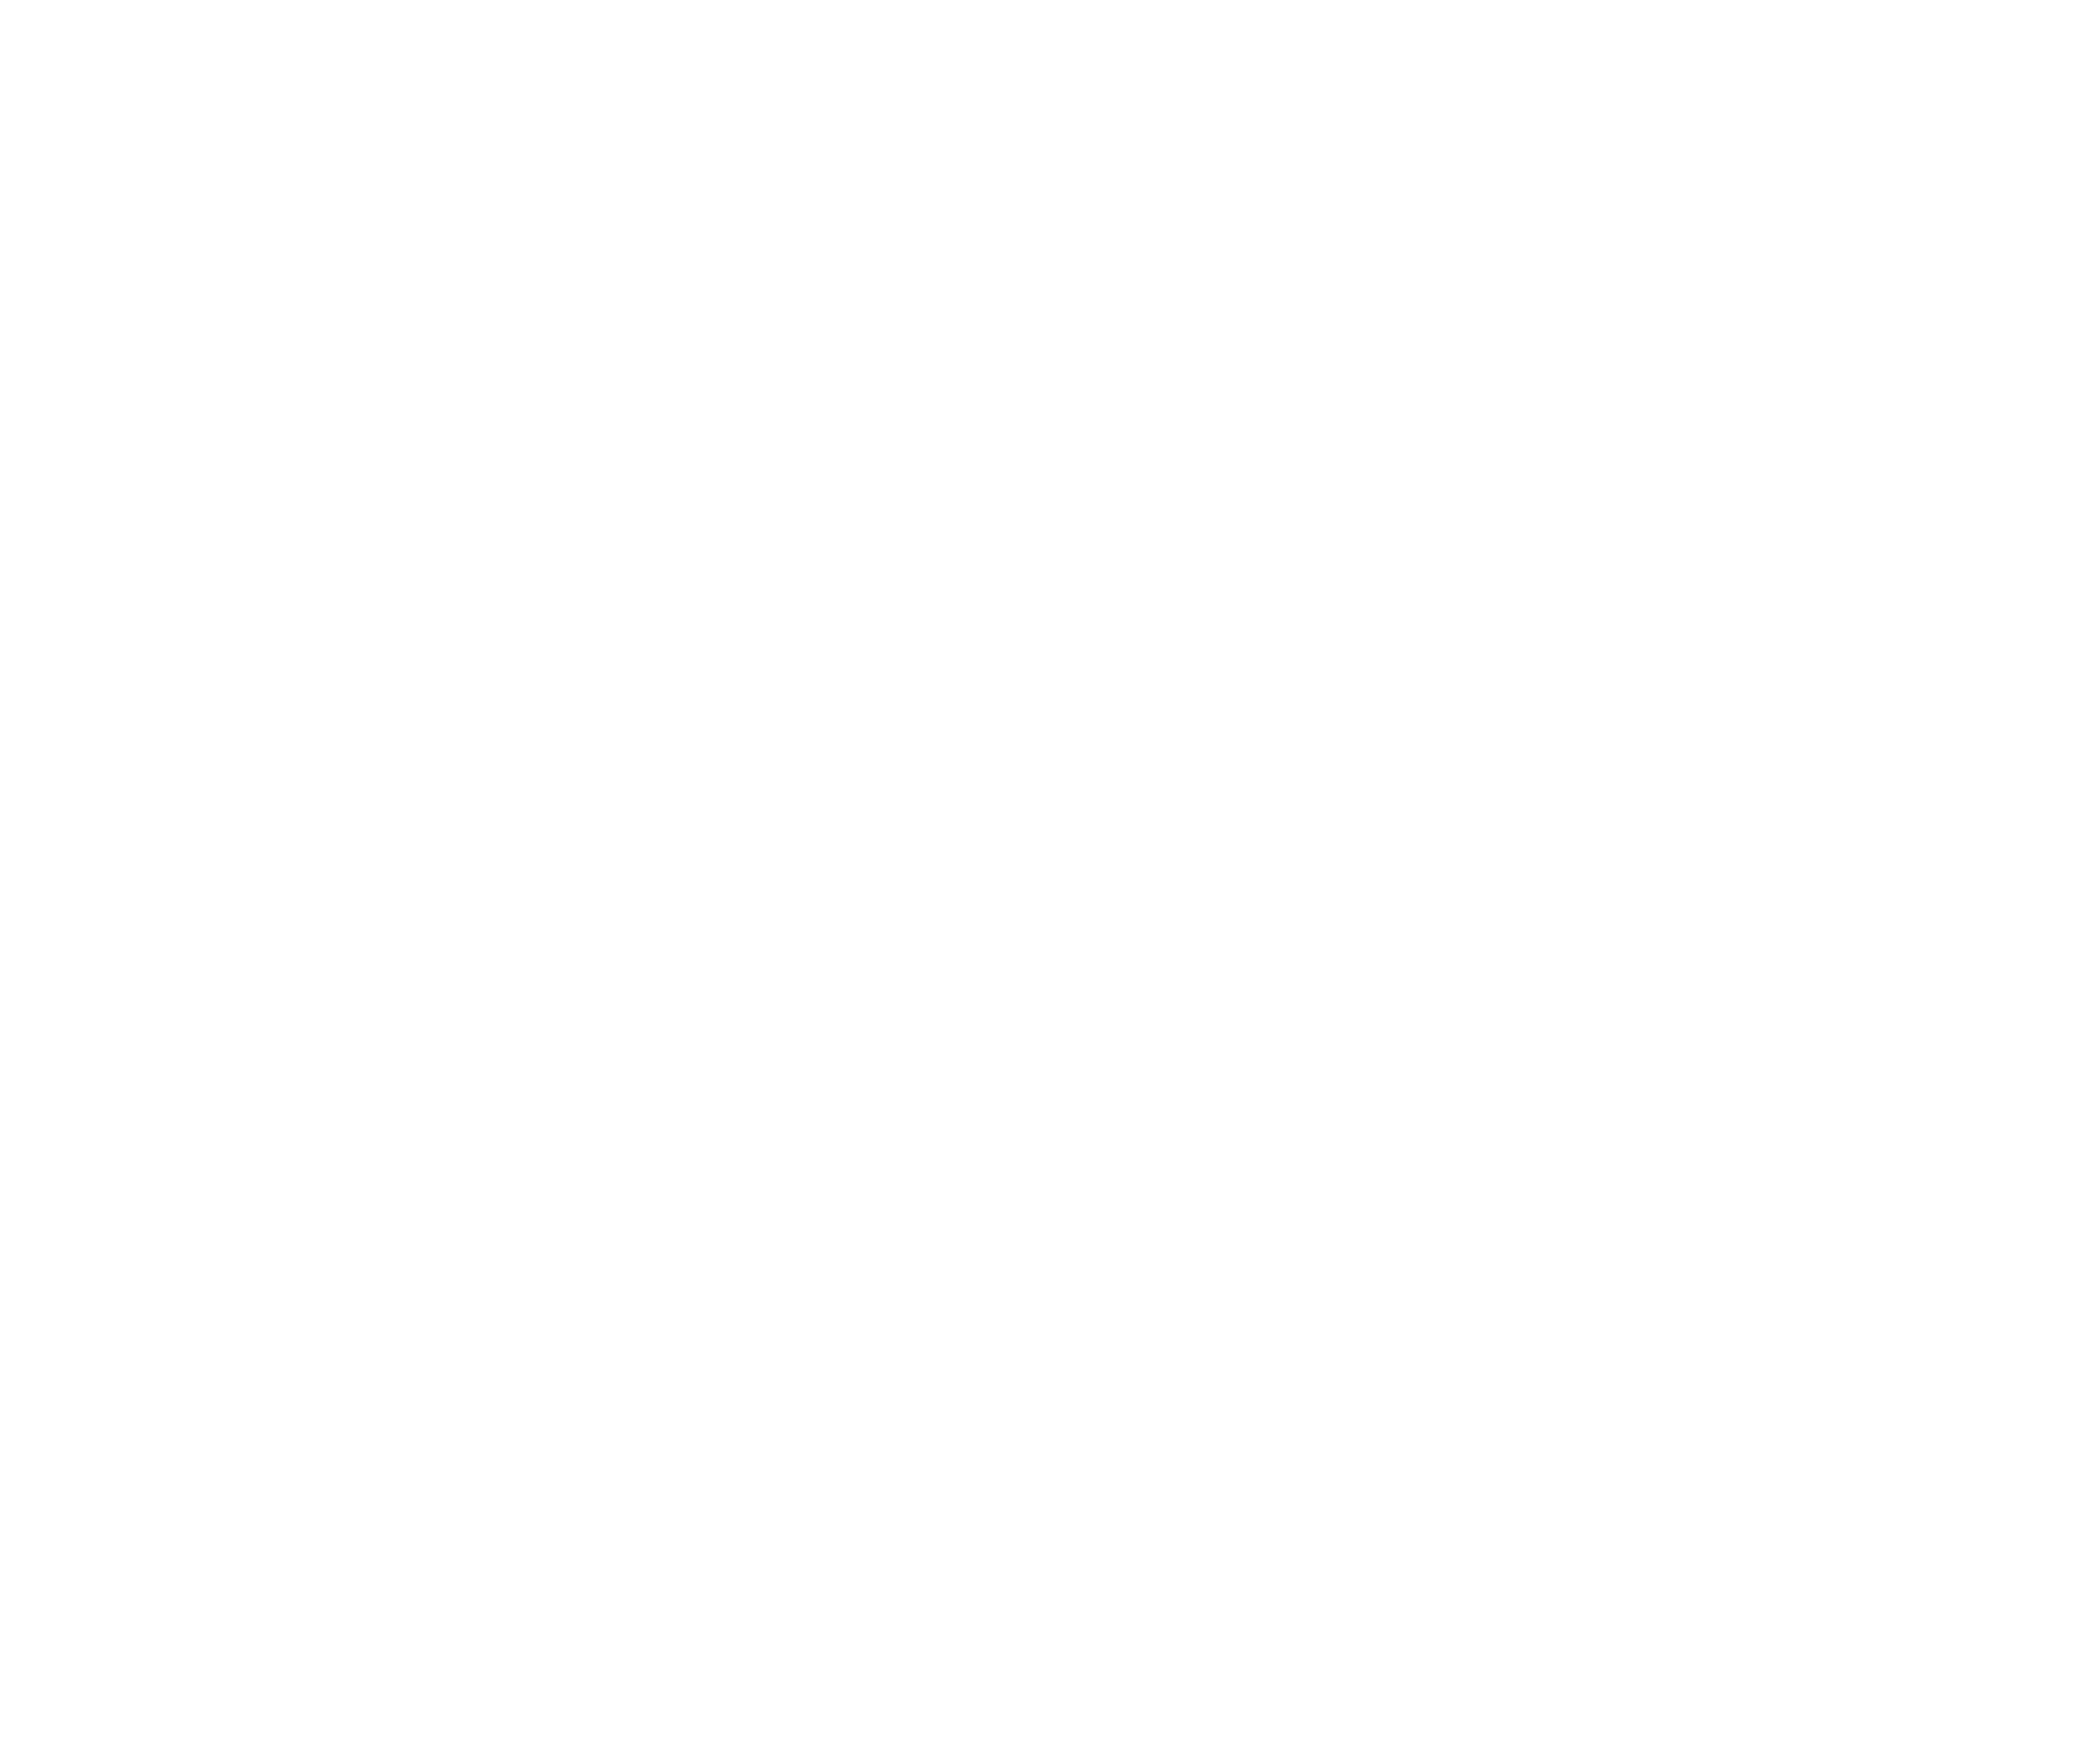 Terry's Camera Trading Co.